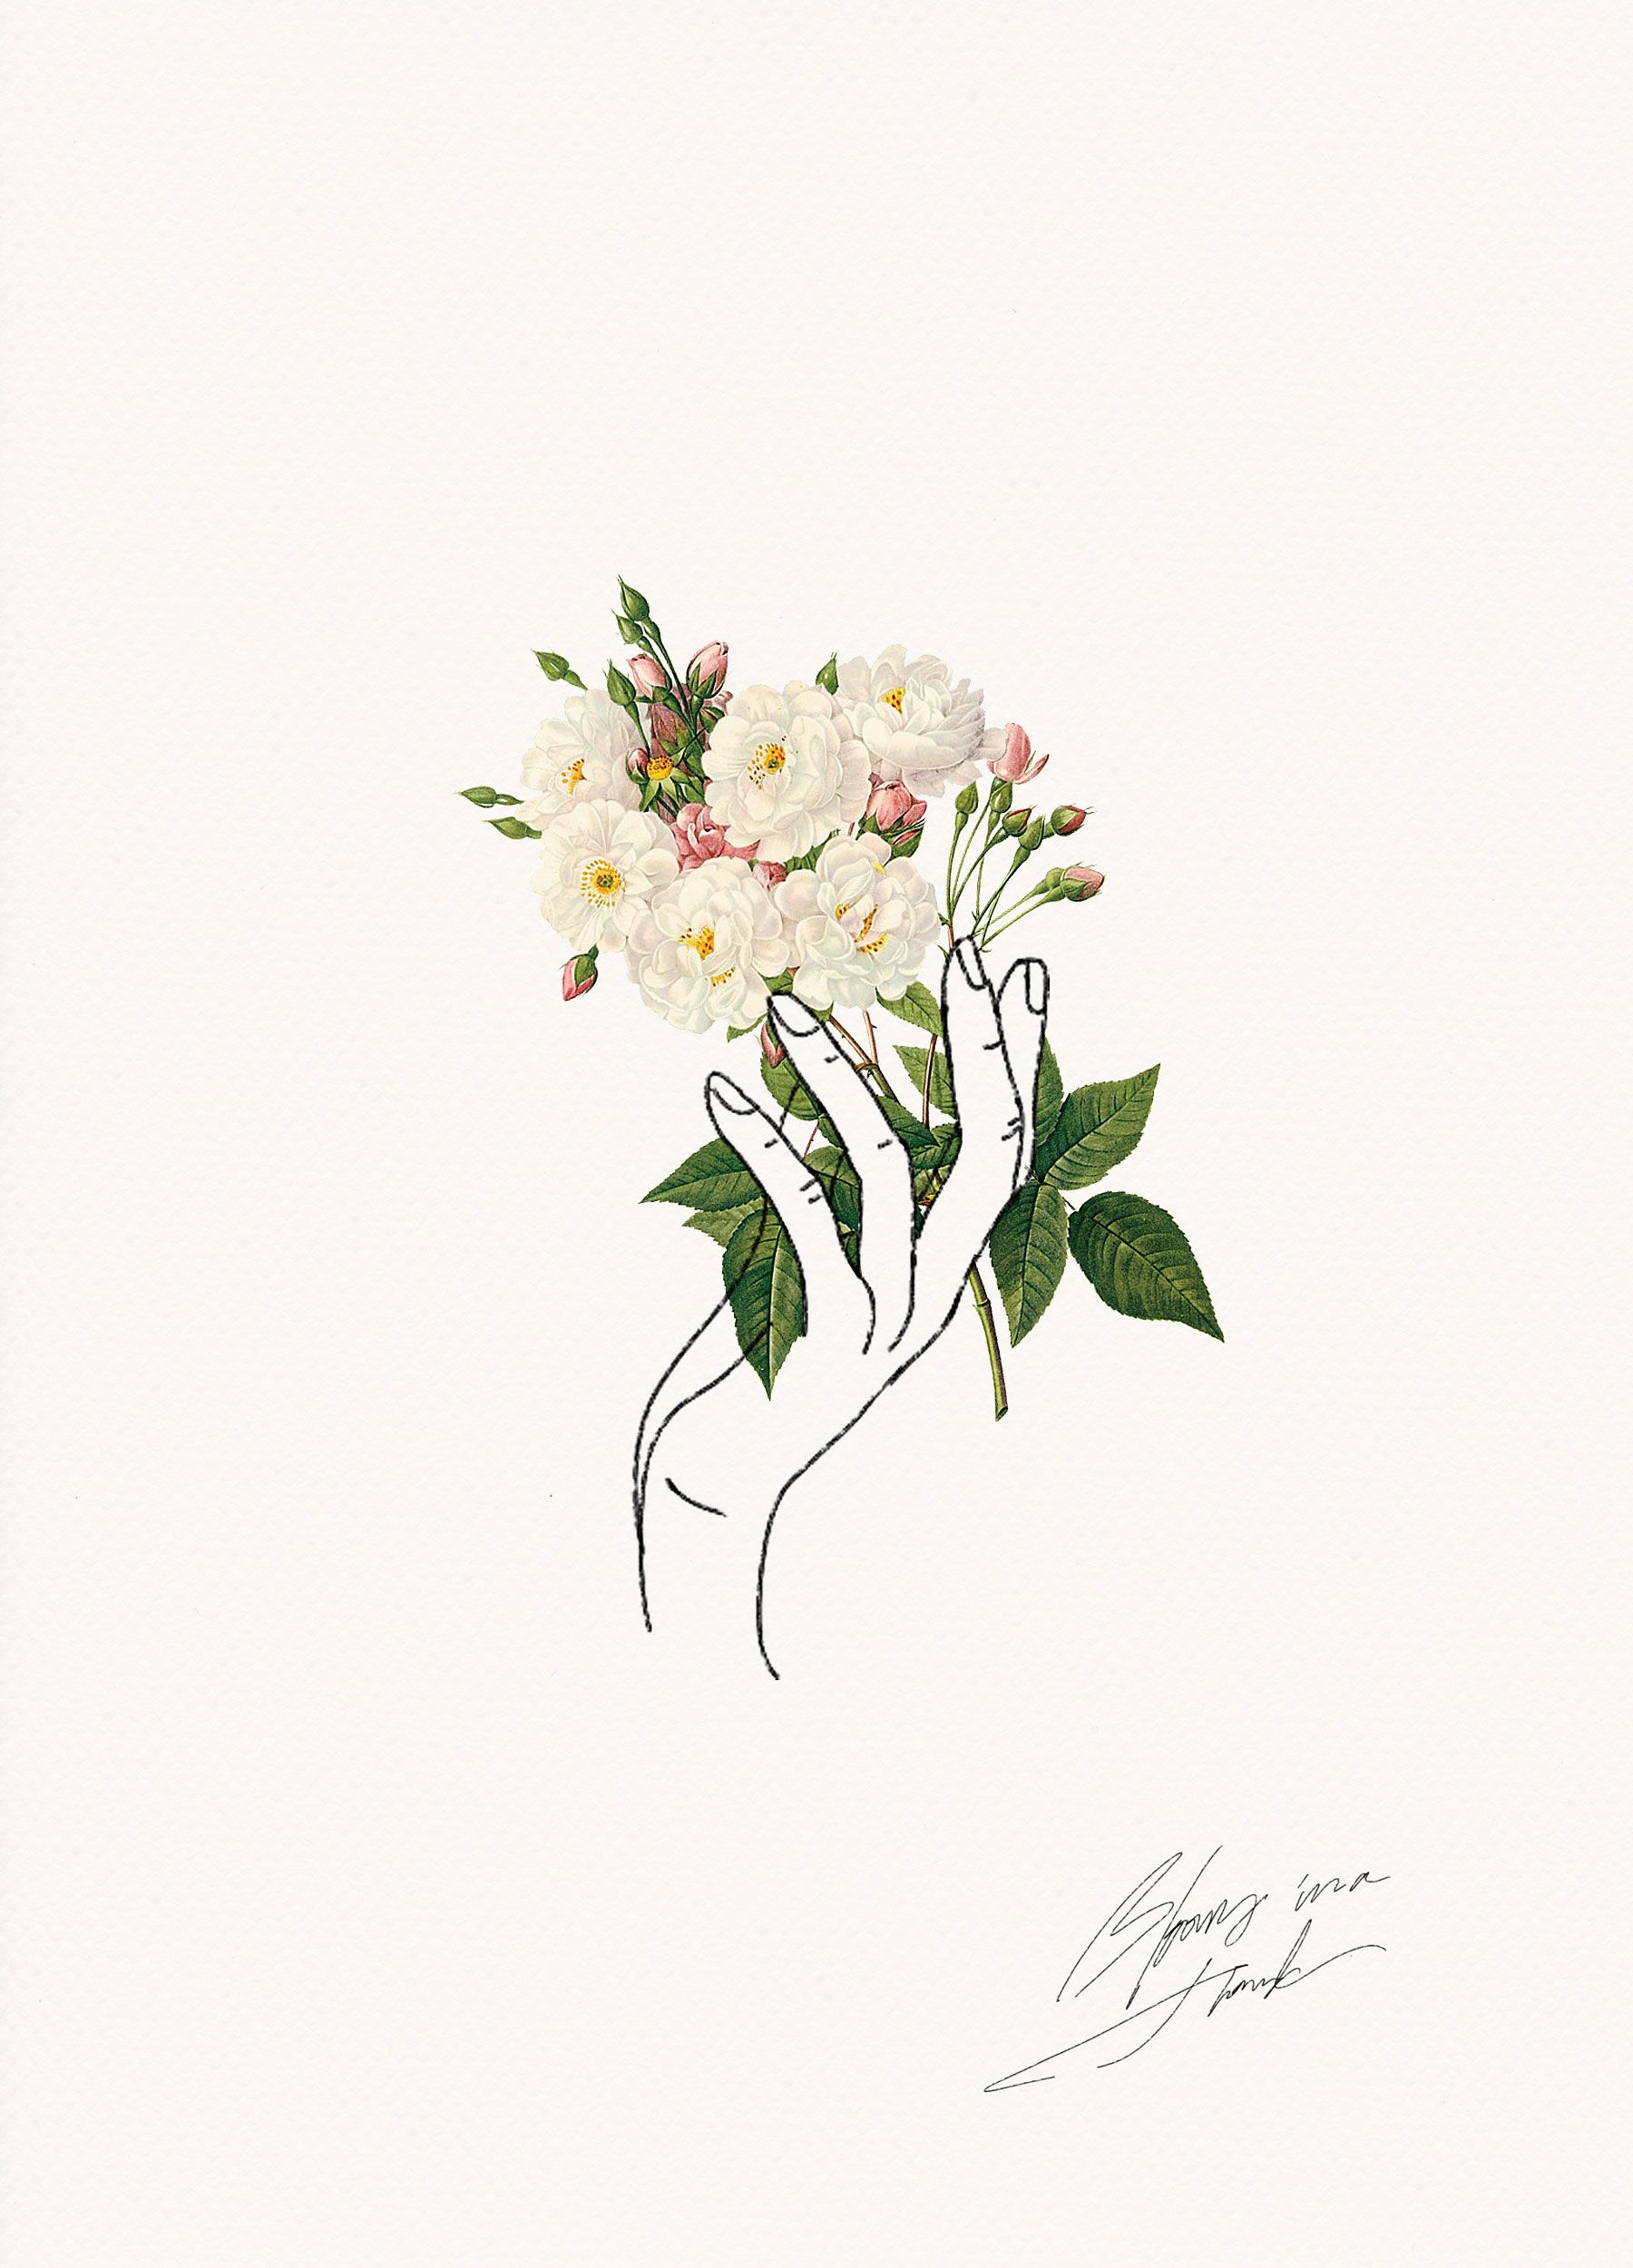 Beautiful Flower Line Drawing : Holding flowers illustrations and wallpaper